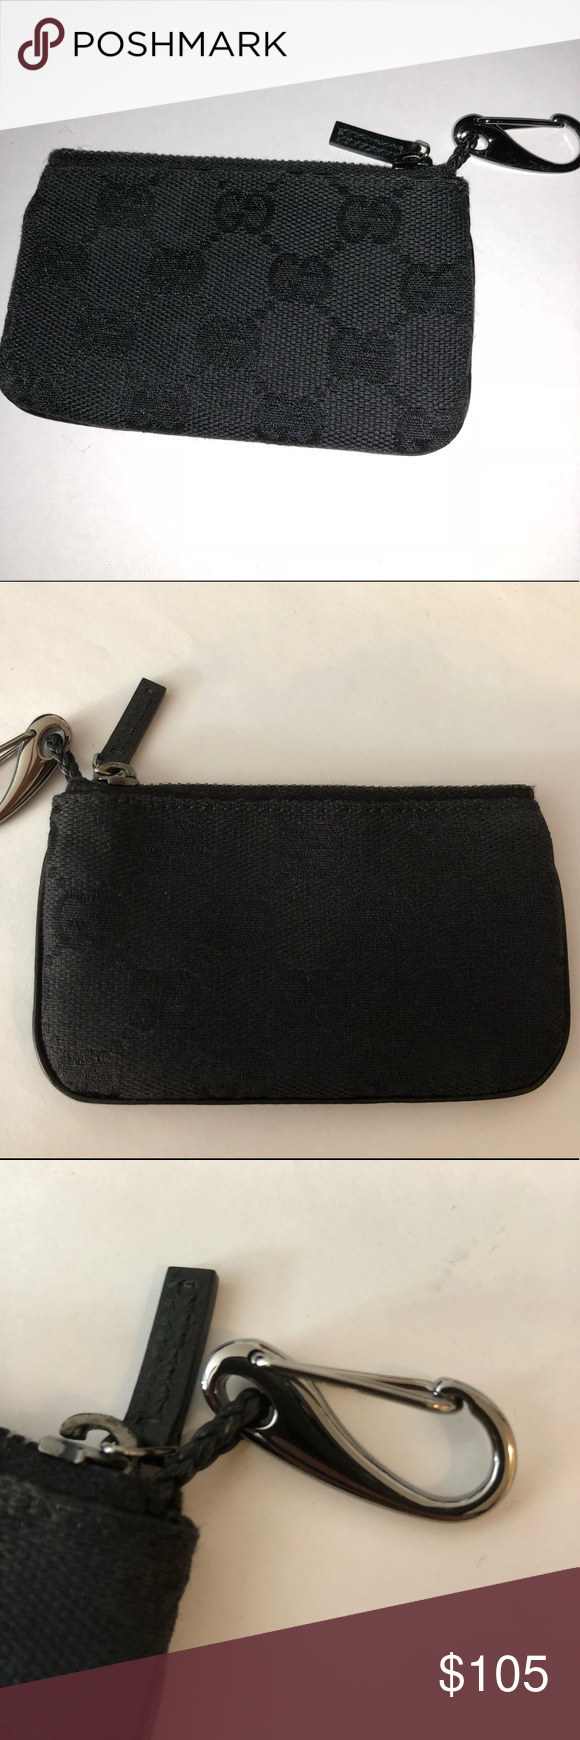 c2f949054ea Gucci keychain wallet Authentic Gucci black canvas logo keychain wallet.  Silver keychain. Perfect condition. Gucci Accessories Key   Card Holders